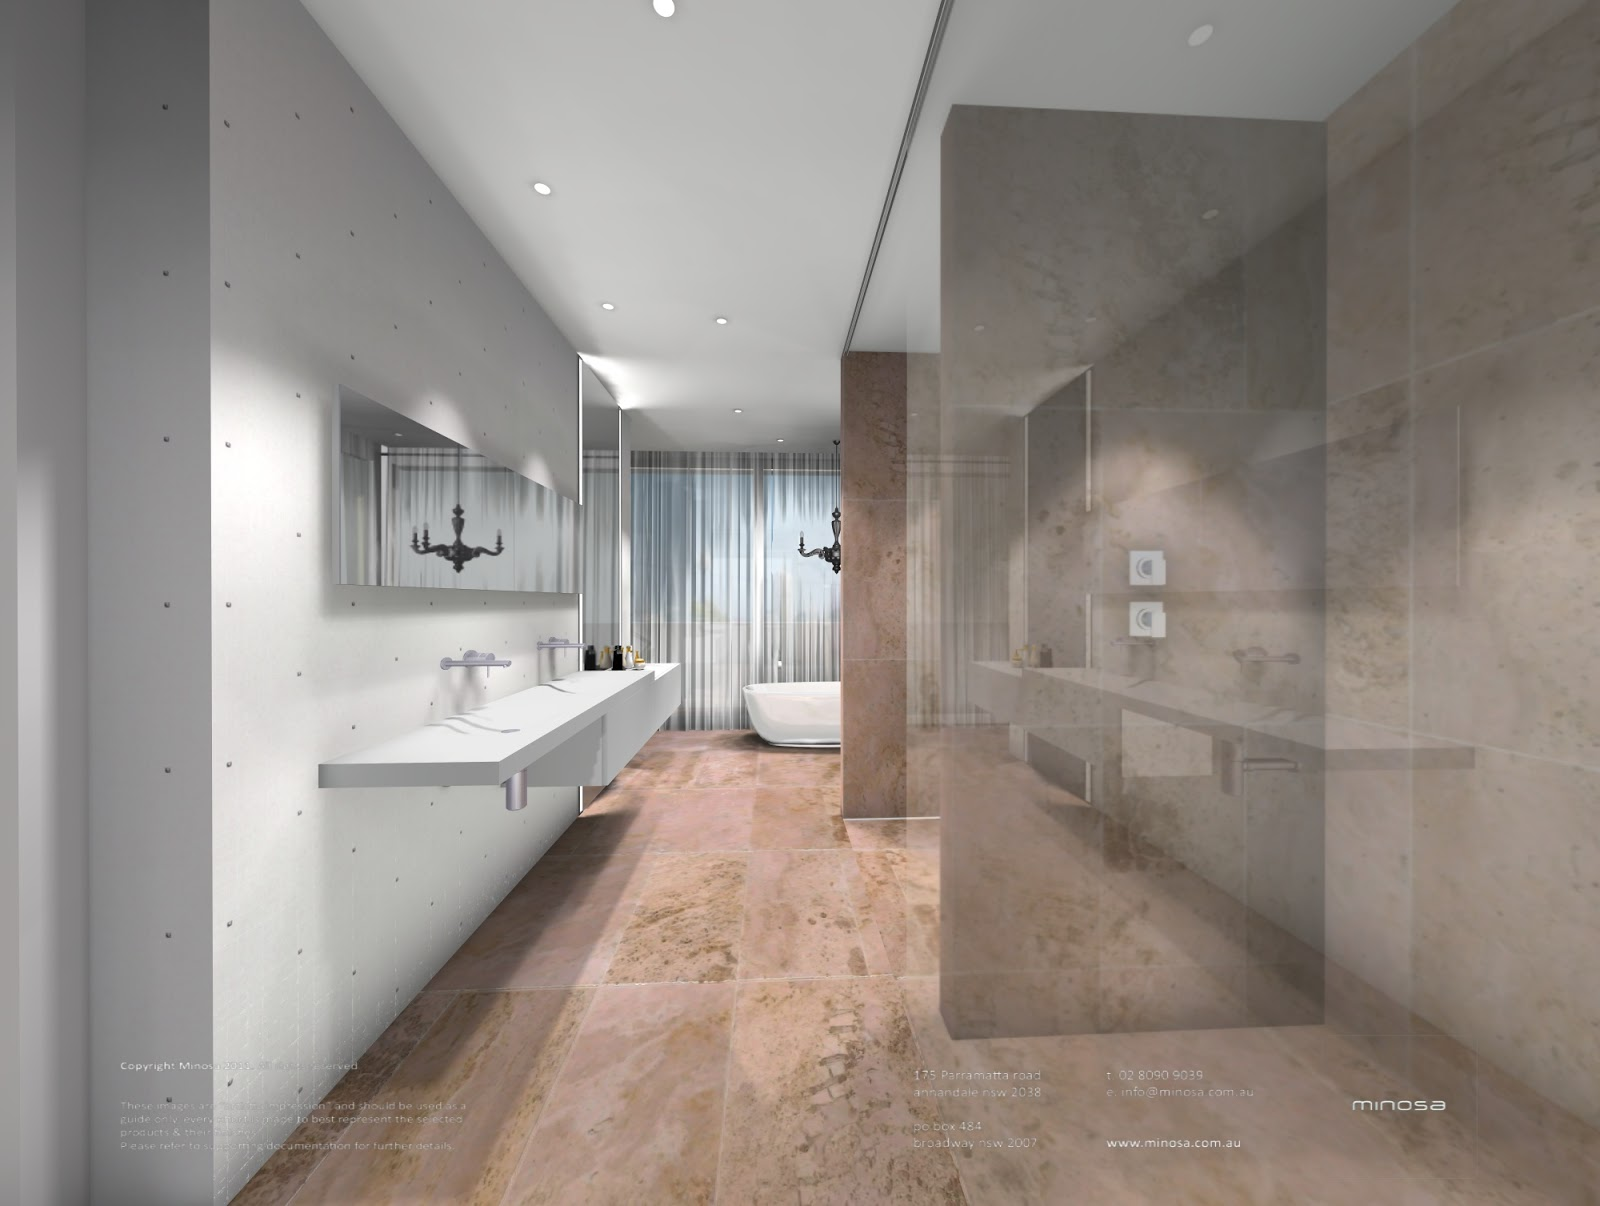 Minosa new minosa bathroom design resort style ensuite - The Large Open Styled Walk In Robe Is Concealed Behind The Sheer Curtain